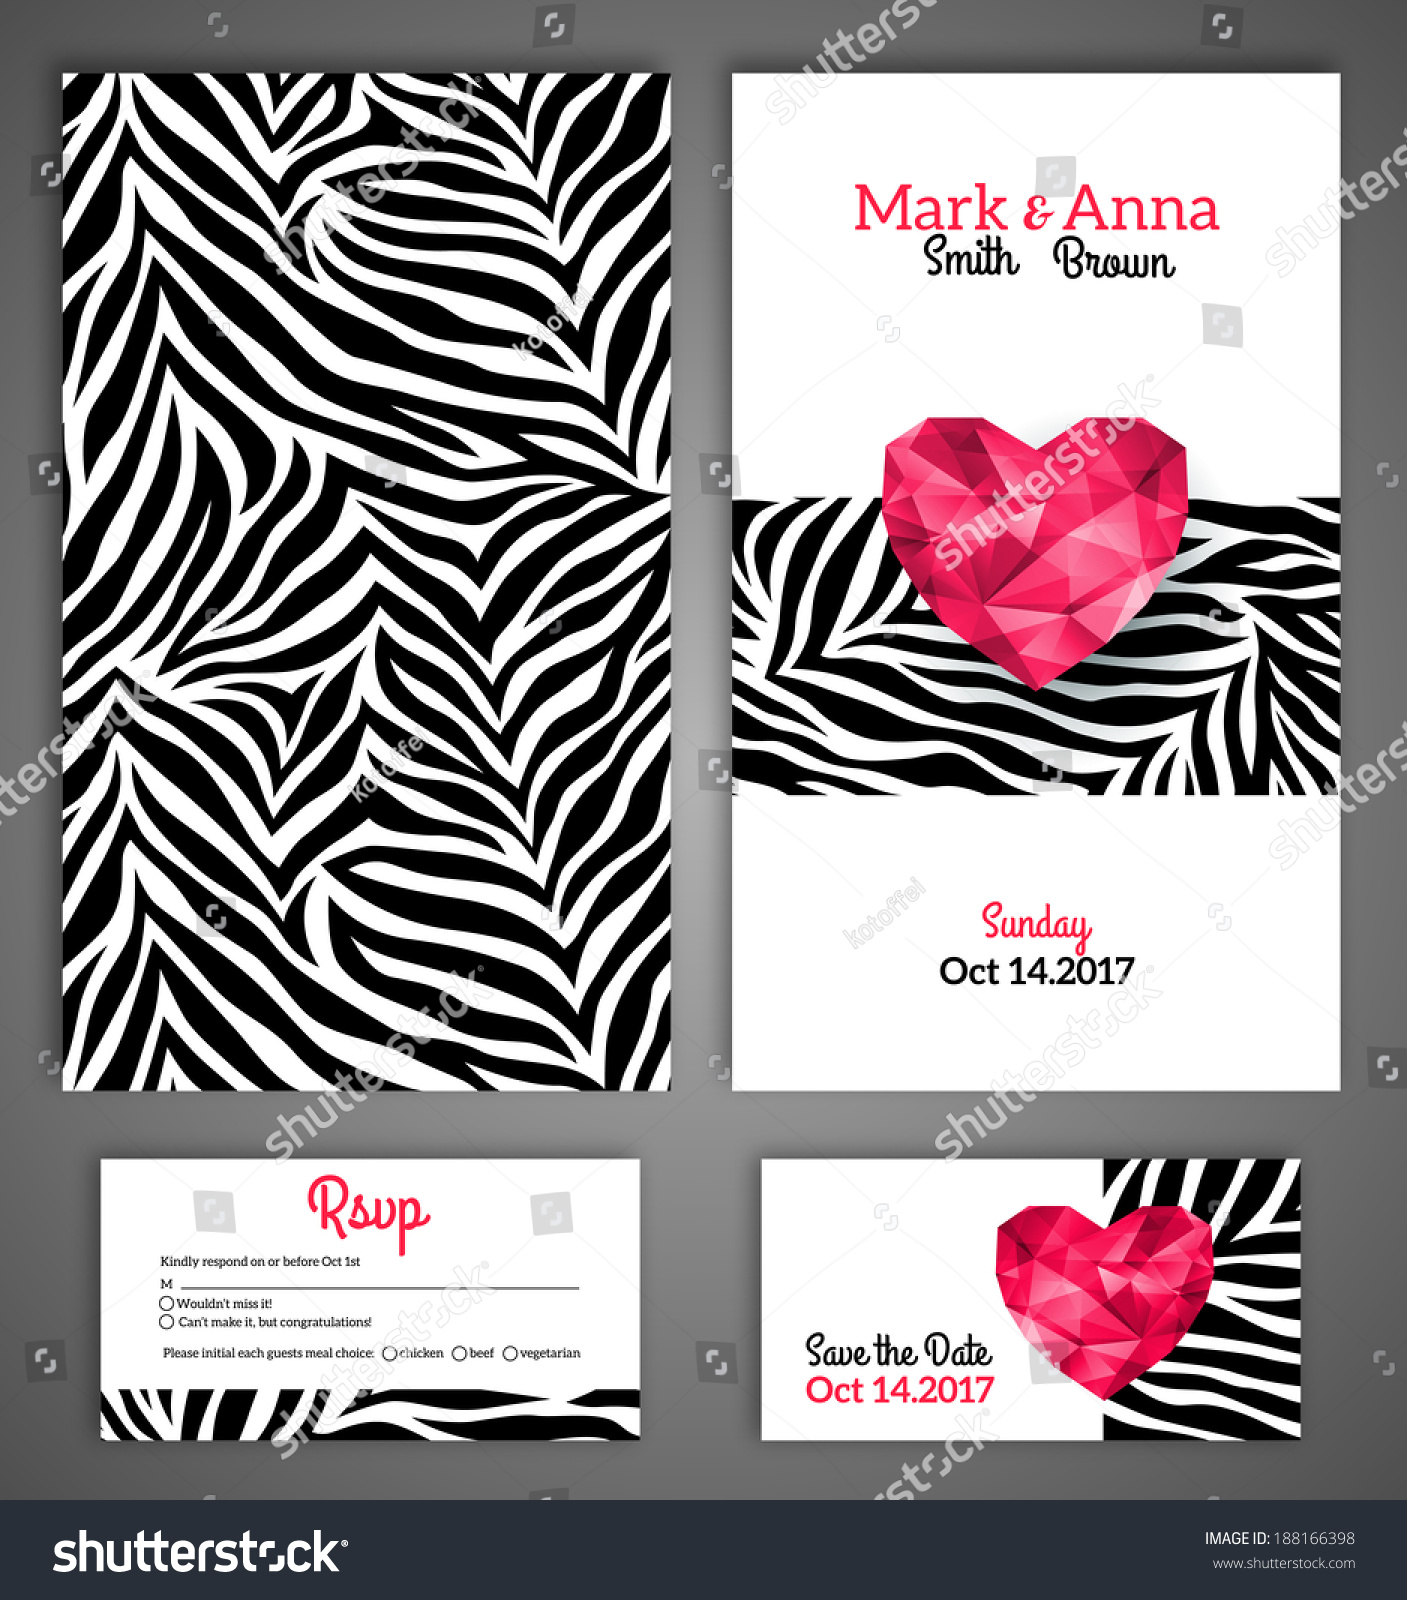 Magnificent 1 Page Resume Or 2 Small 10 Envelope Template Indesign Clean 15 Year Old Student Resume 185 Powerful Resume Verbs Old 1920s Newspaper Template White1st Birthday Invite Templates Wedding Invitation Cards Template Abstract Polygonal Stock Vector ..